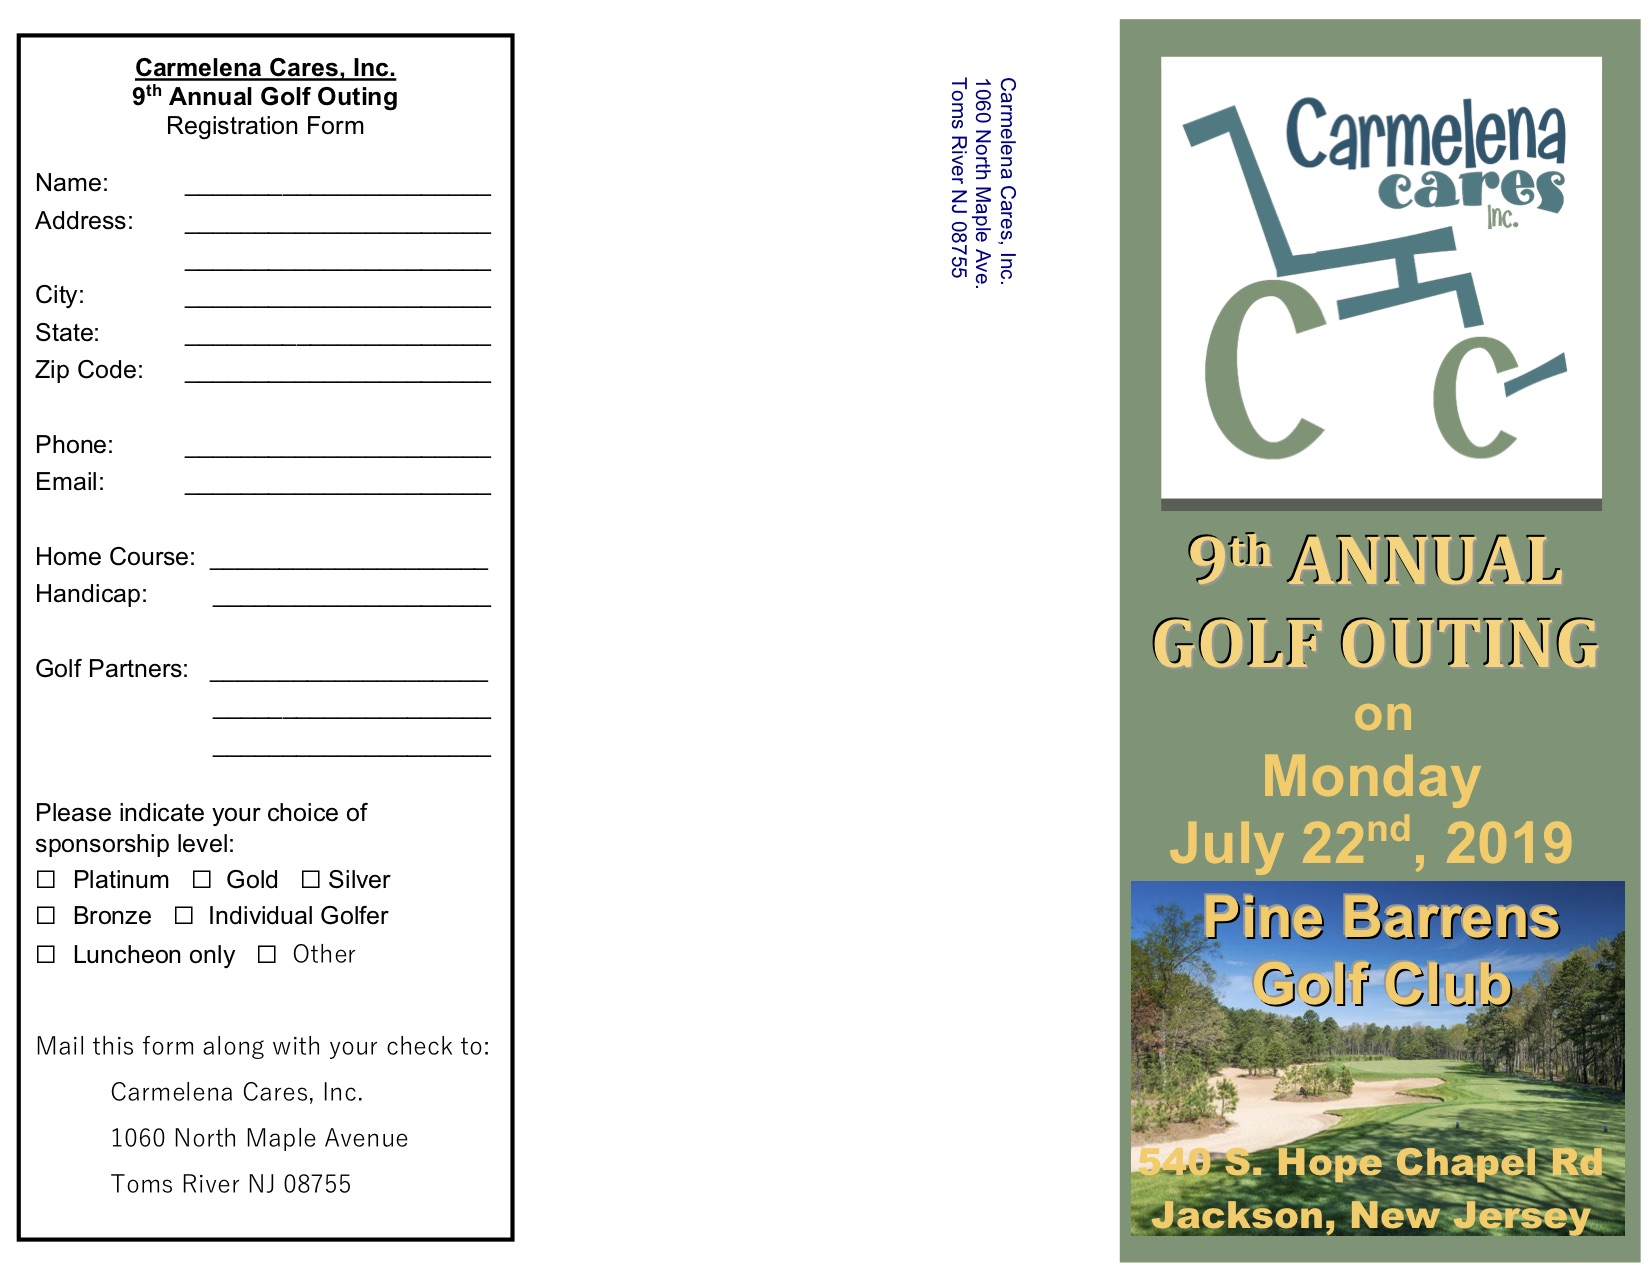 Carm Cares Golf Brochure 2019  outside.jpg